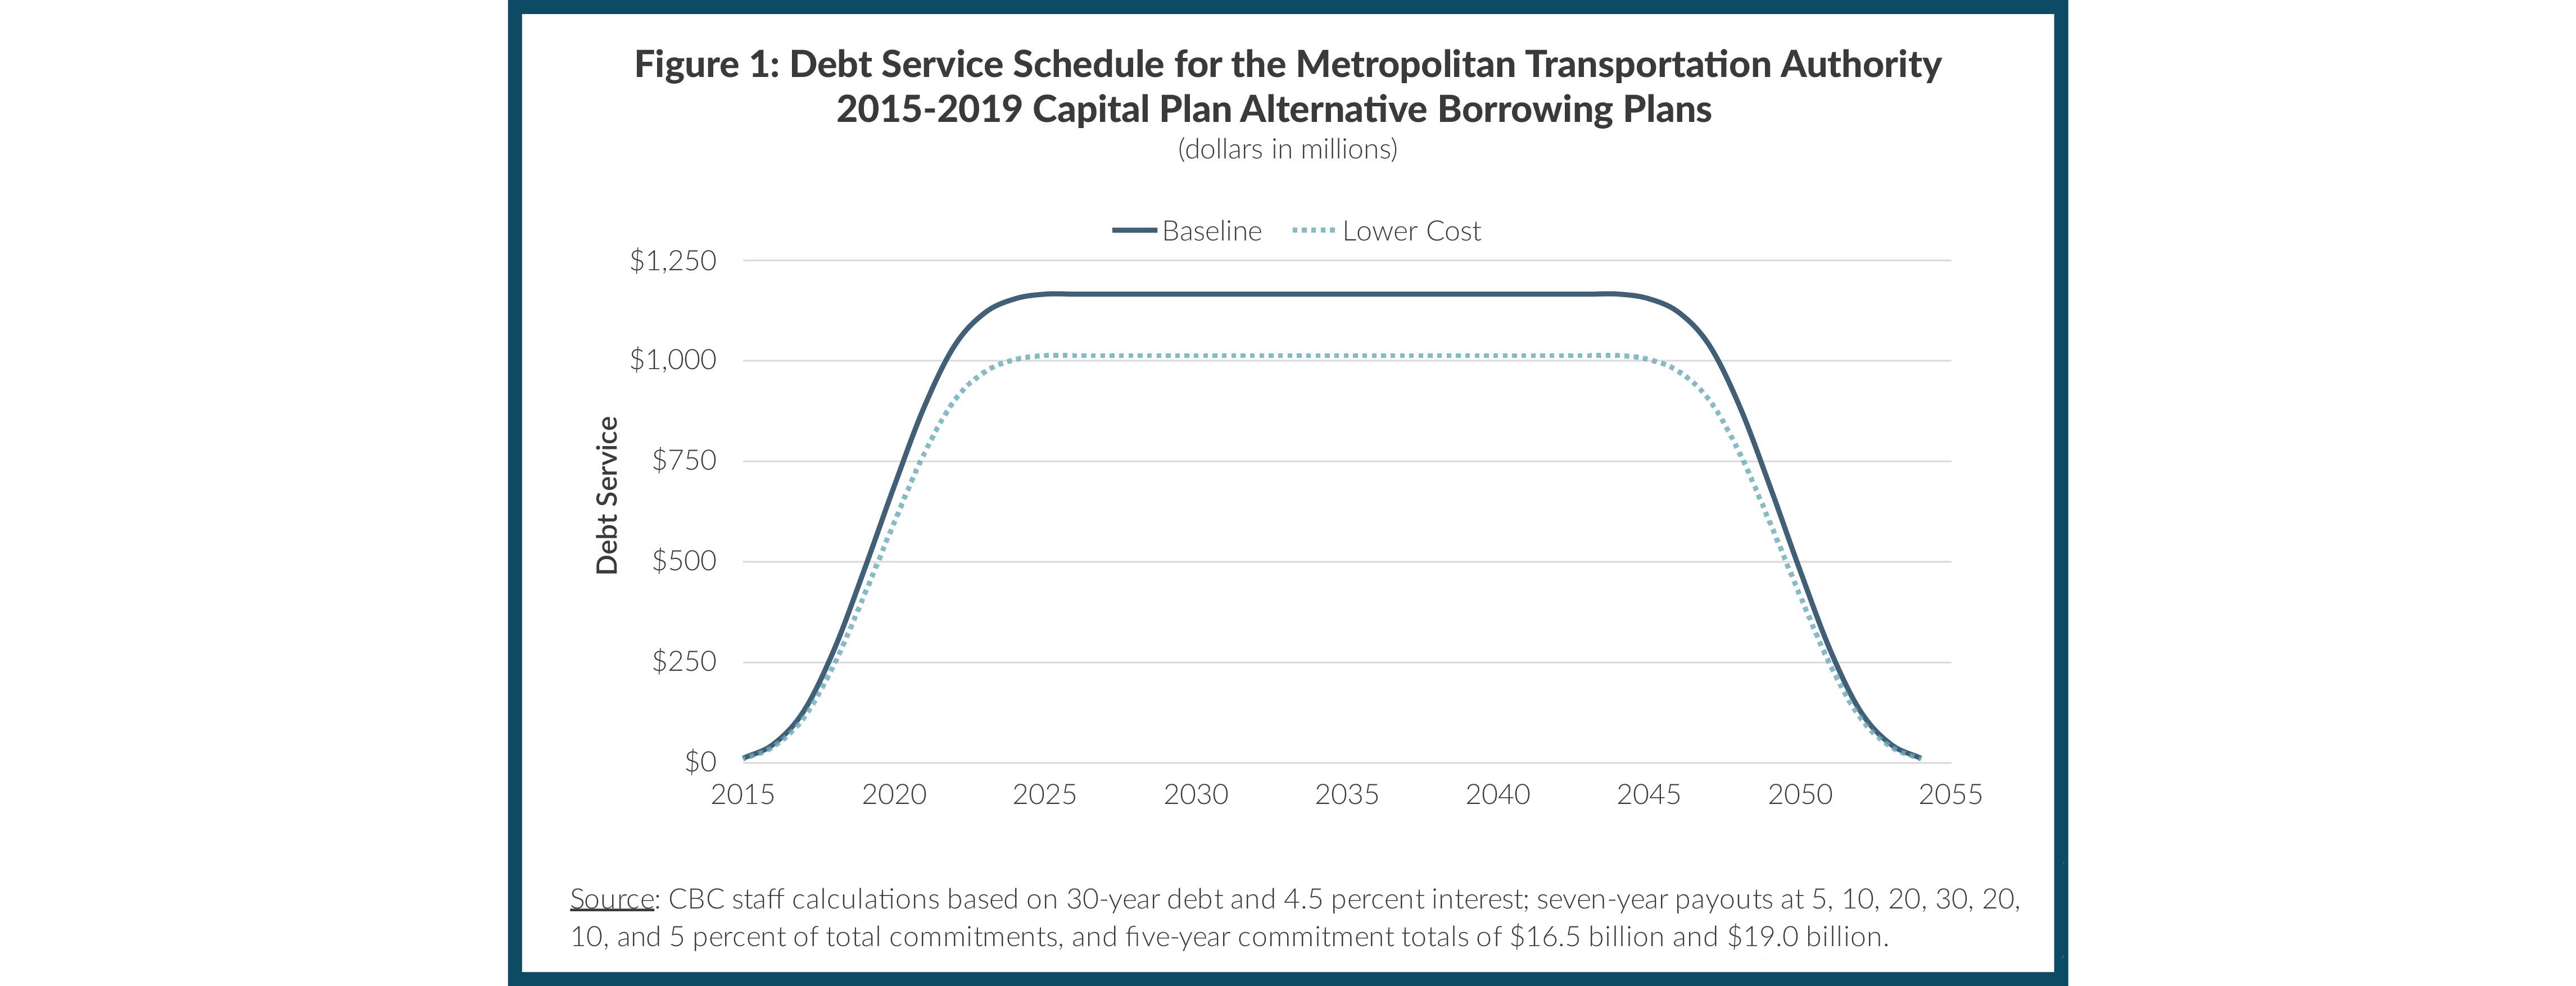 10 Figure 1: Debt Service Schedule for the Metropolitan Transportation Authority 2015-2019 Capital Plan Alternative Borrowing Plans